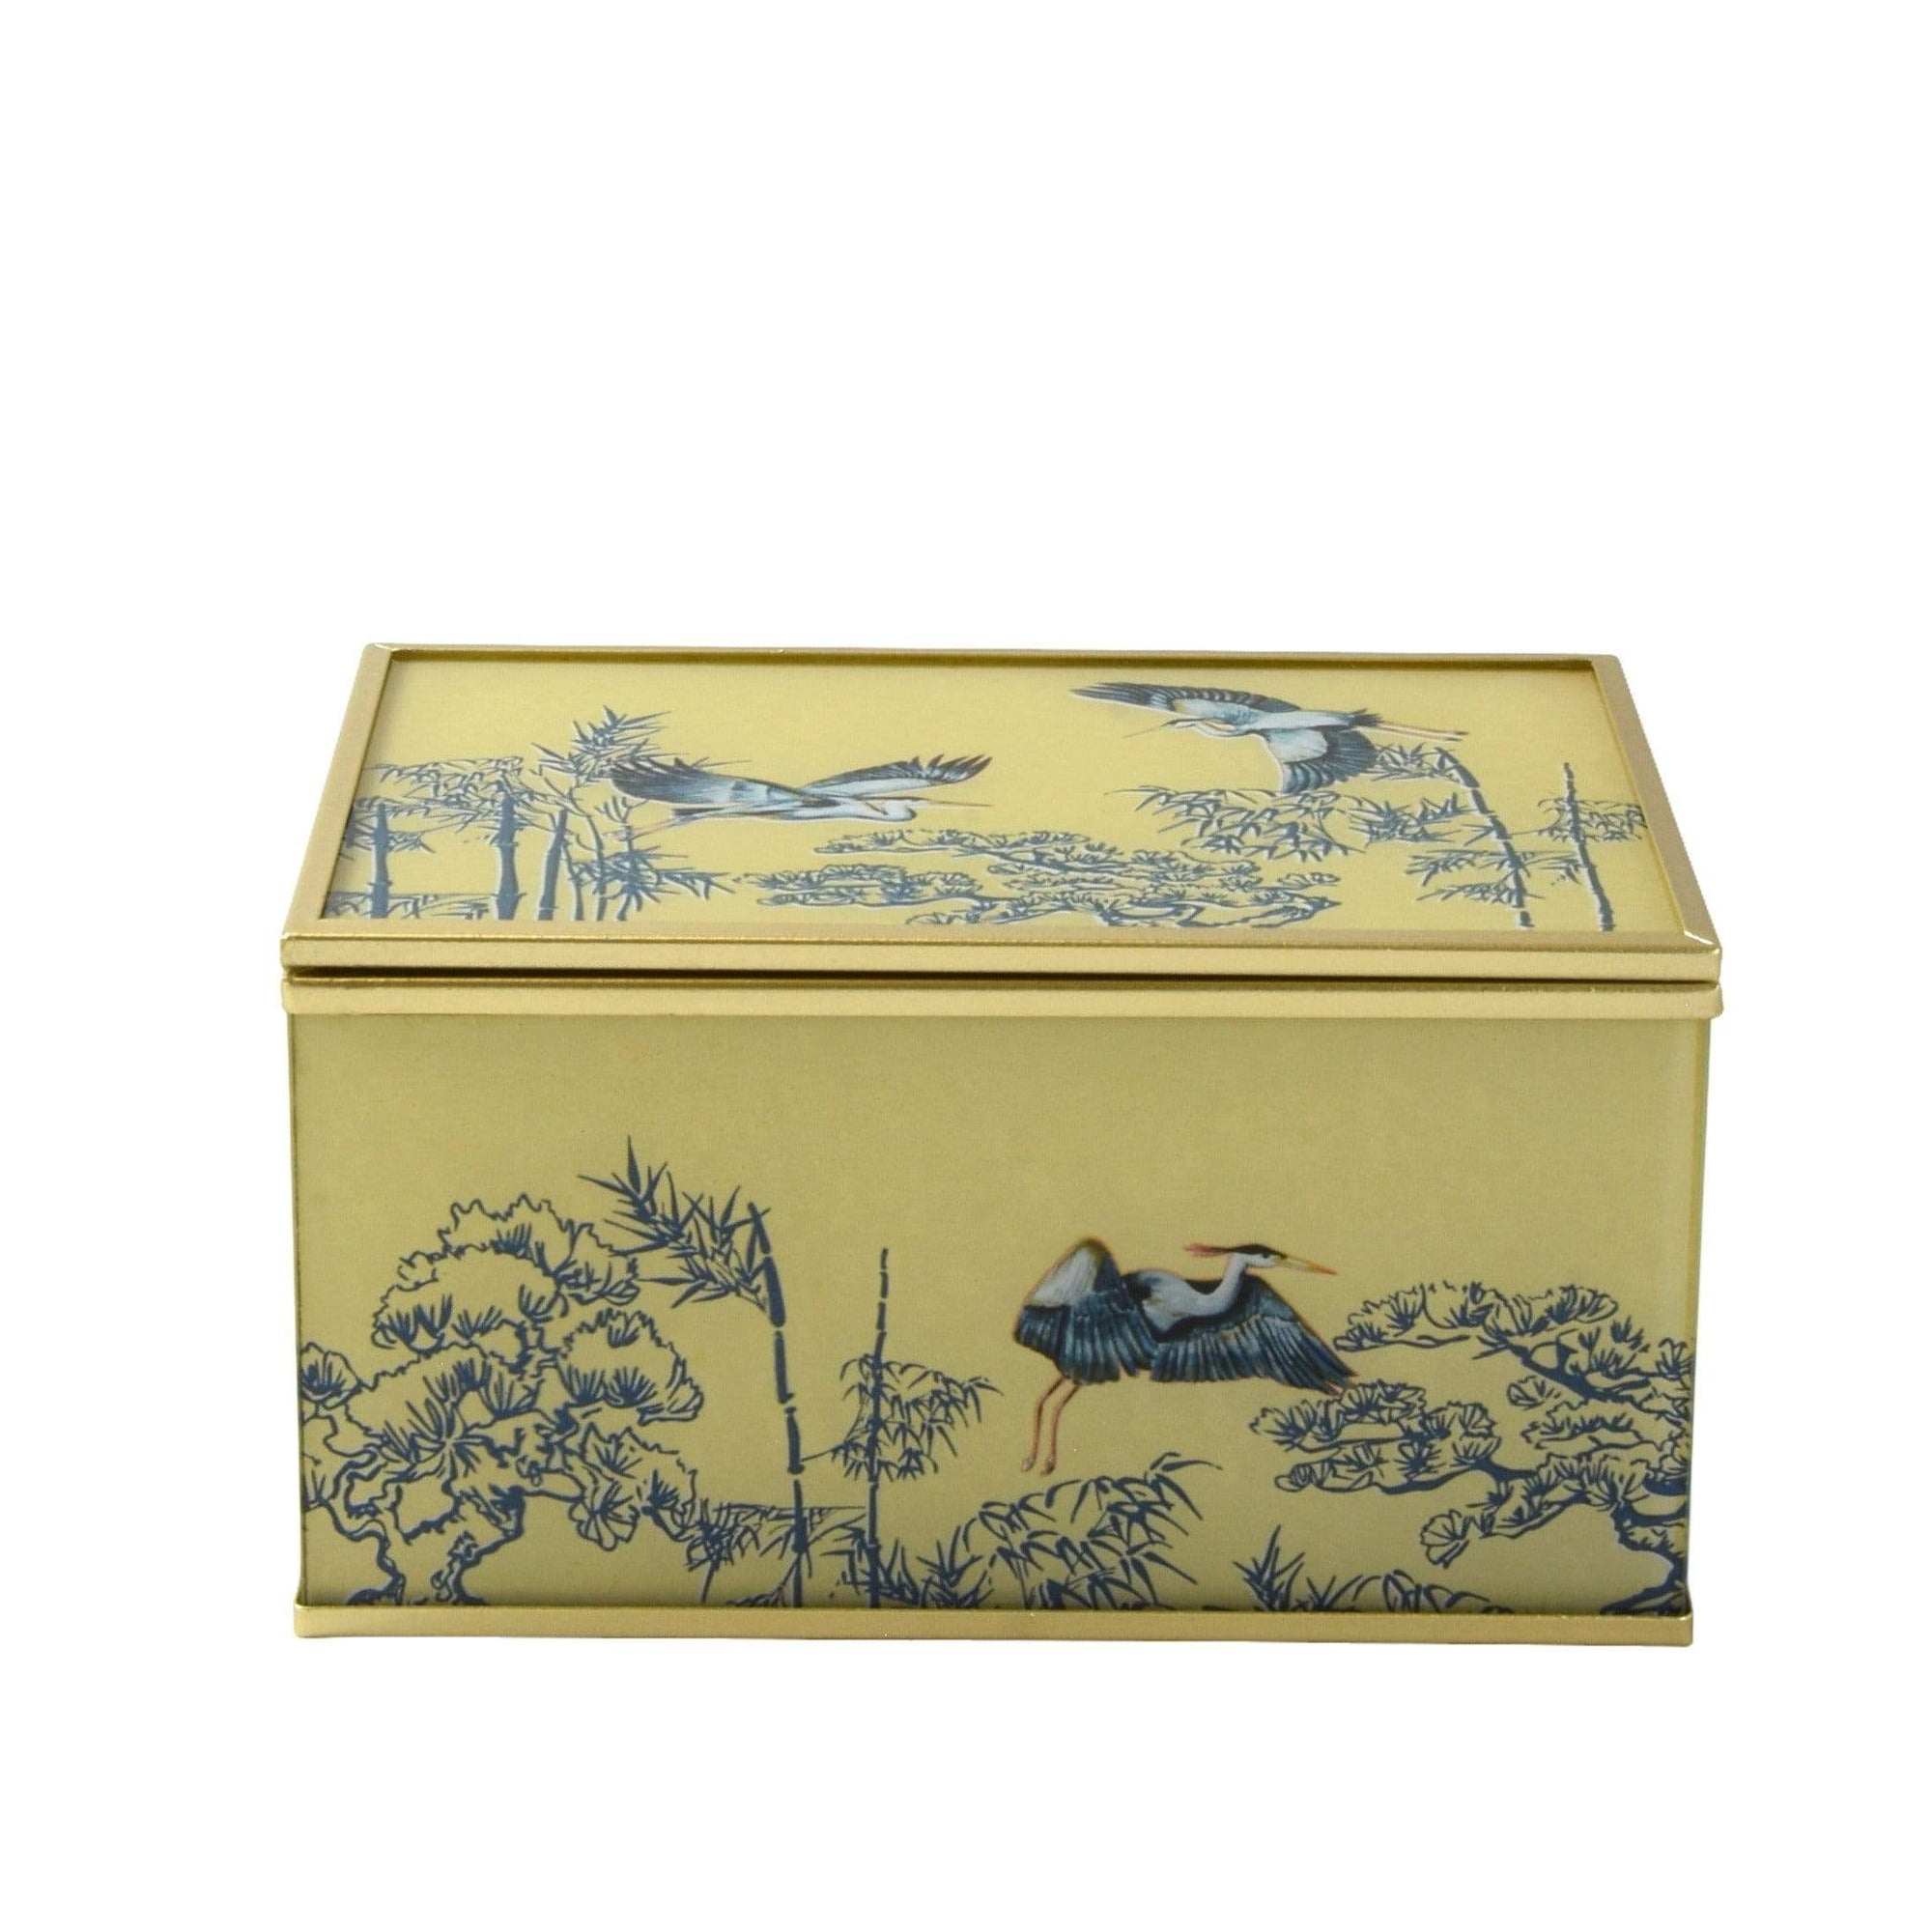 Glass Jewellery Box in Oriental Heron Design with Bevelled Edge 3PK